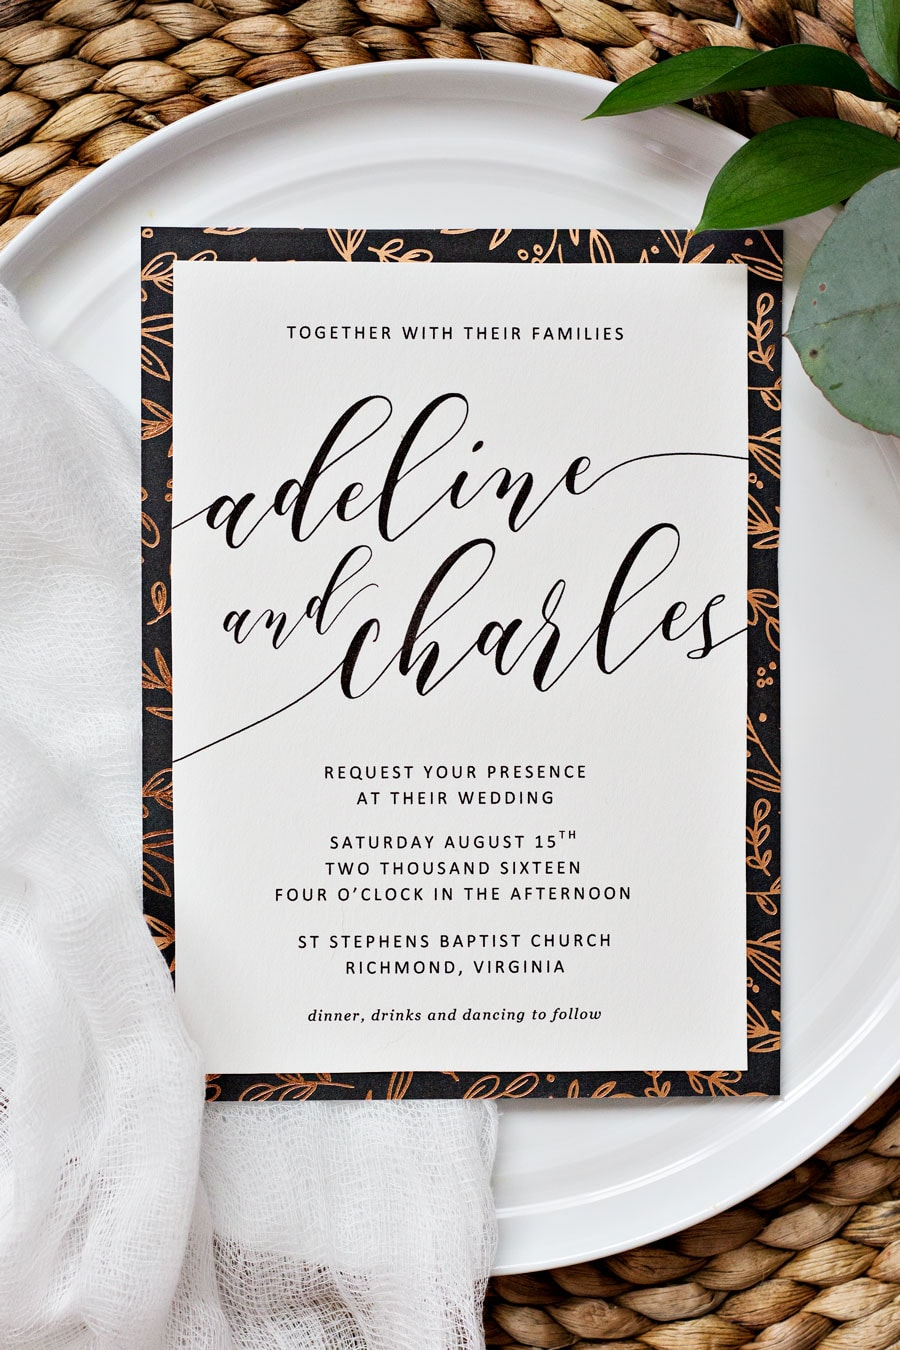 To Spruce Up Your Printable Wedding Invitations We Recommend Adding Glitz And Charm By Creating